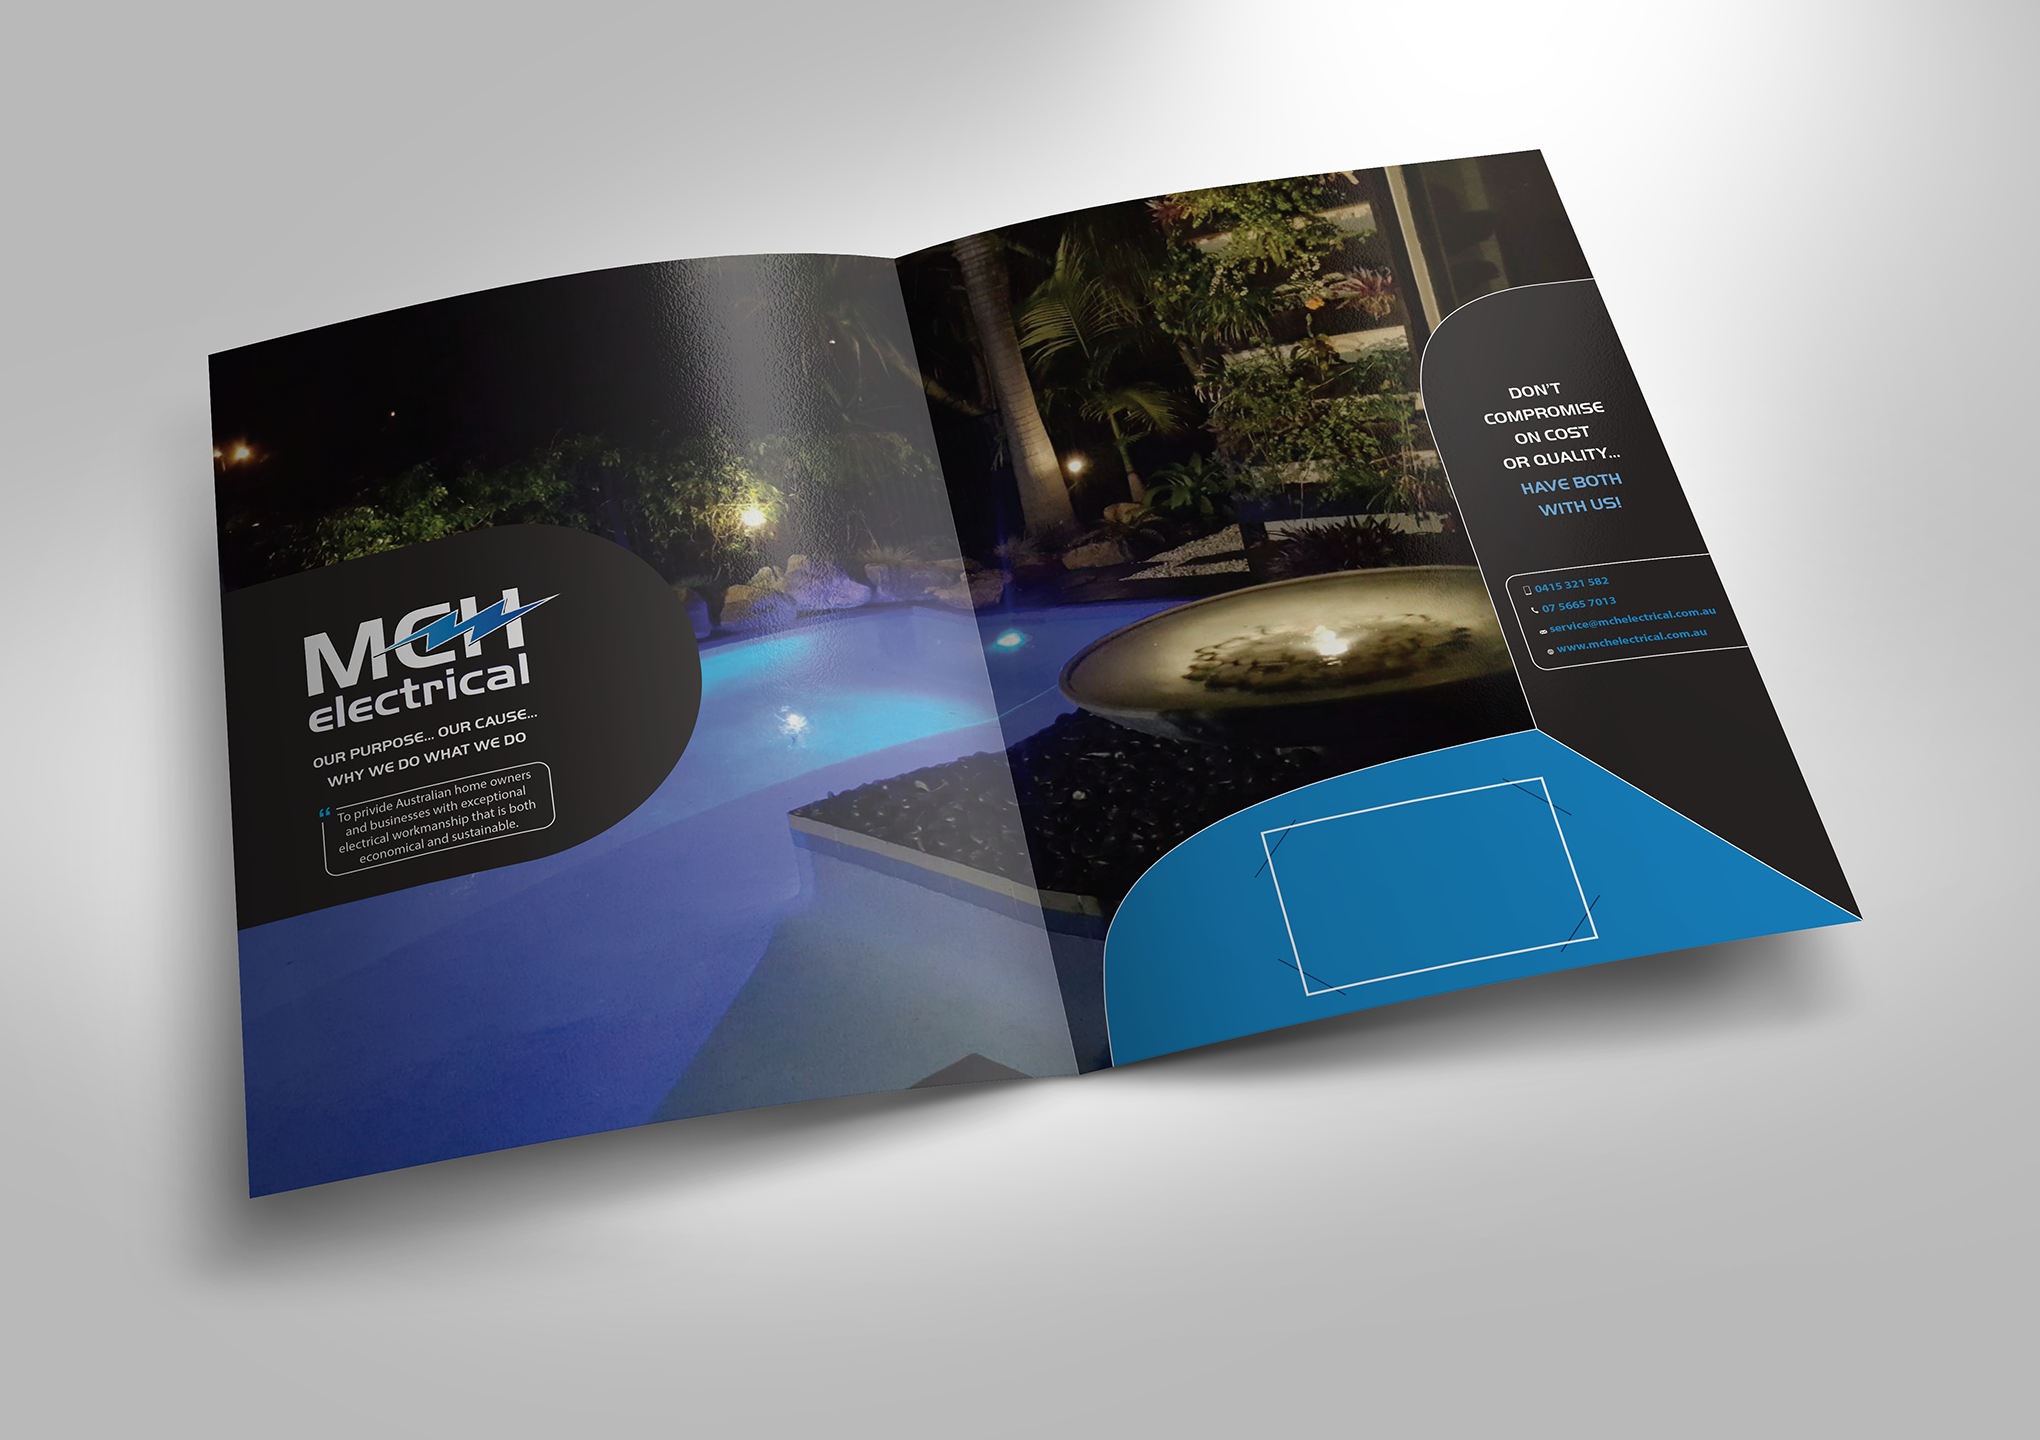 Electrical Firm MCH needs a great Company Brochure